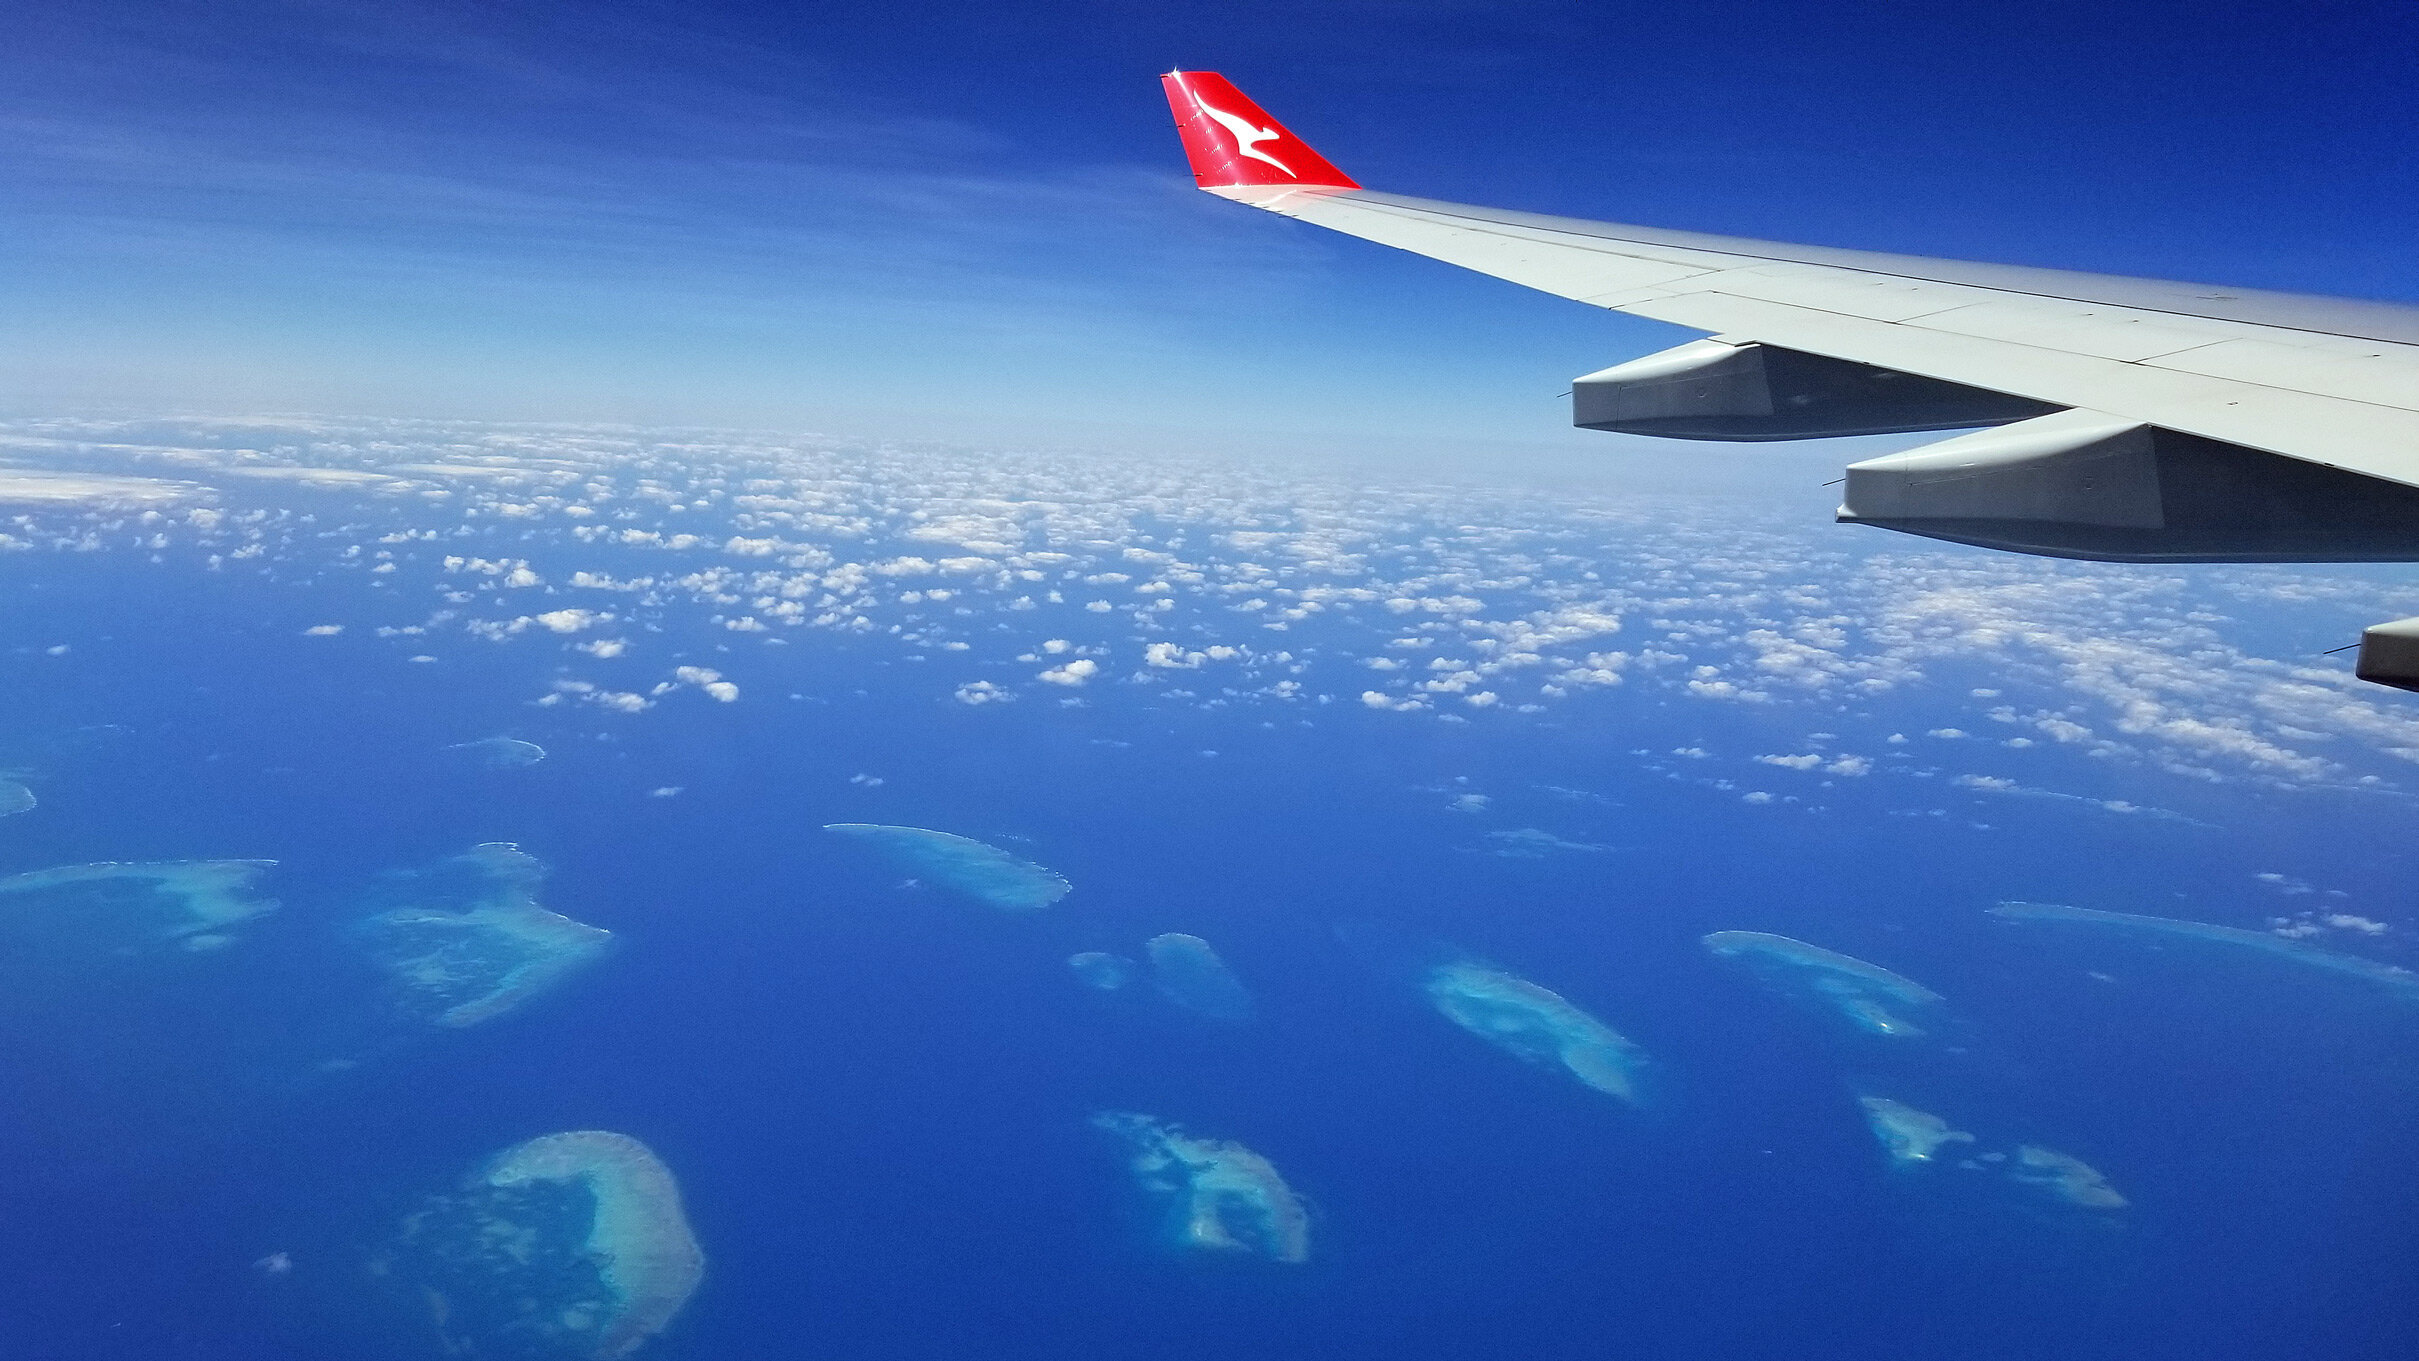 The northern part of the Great Barrier Reef system.  I like the Qantas logo.